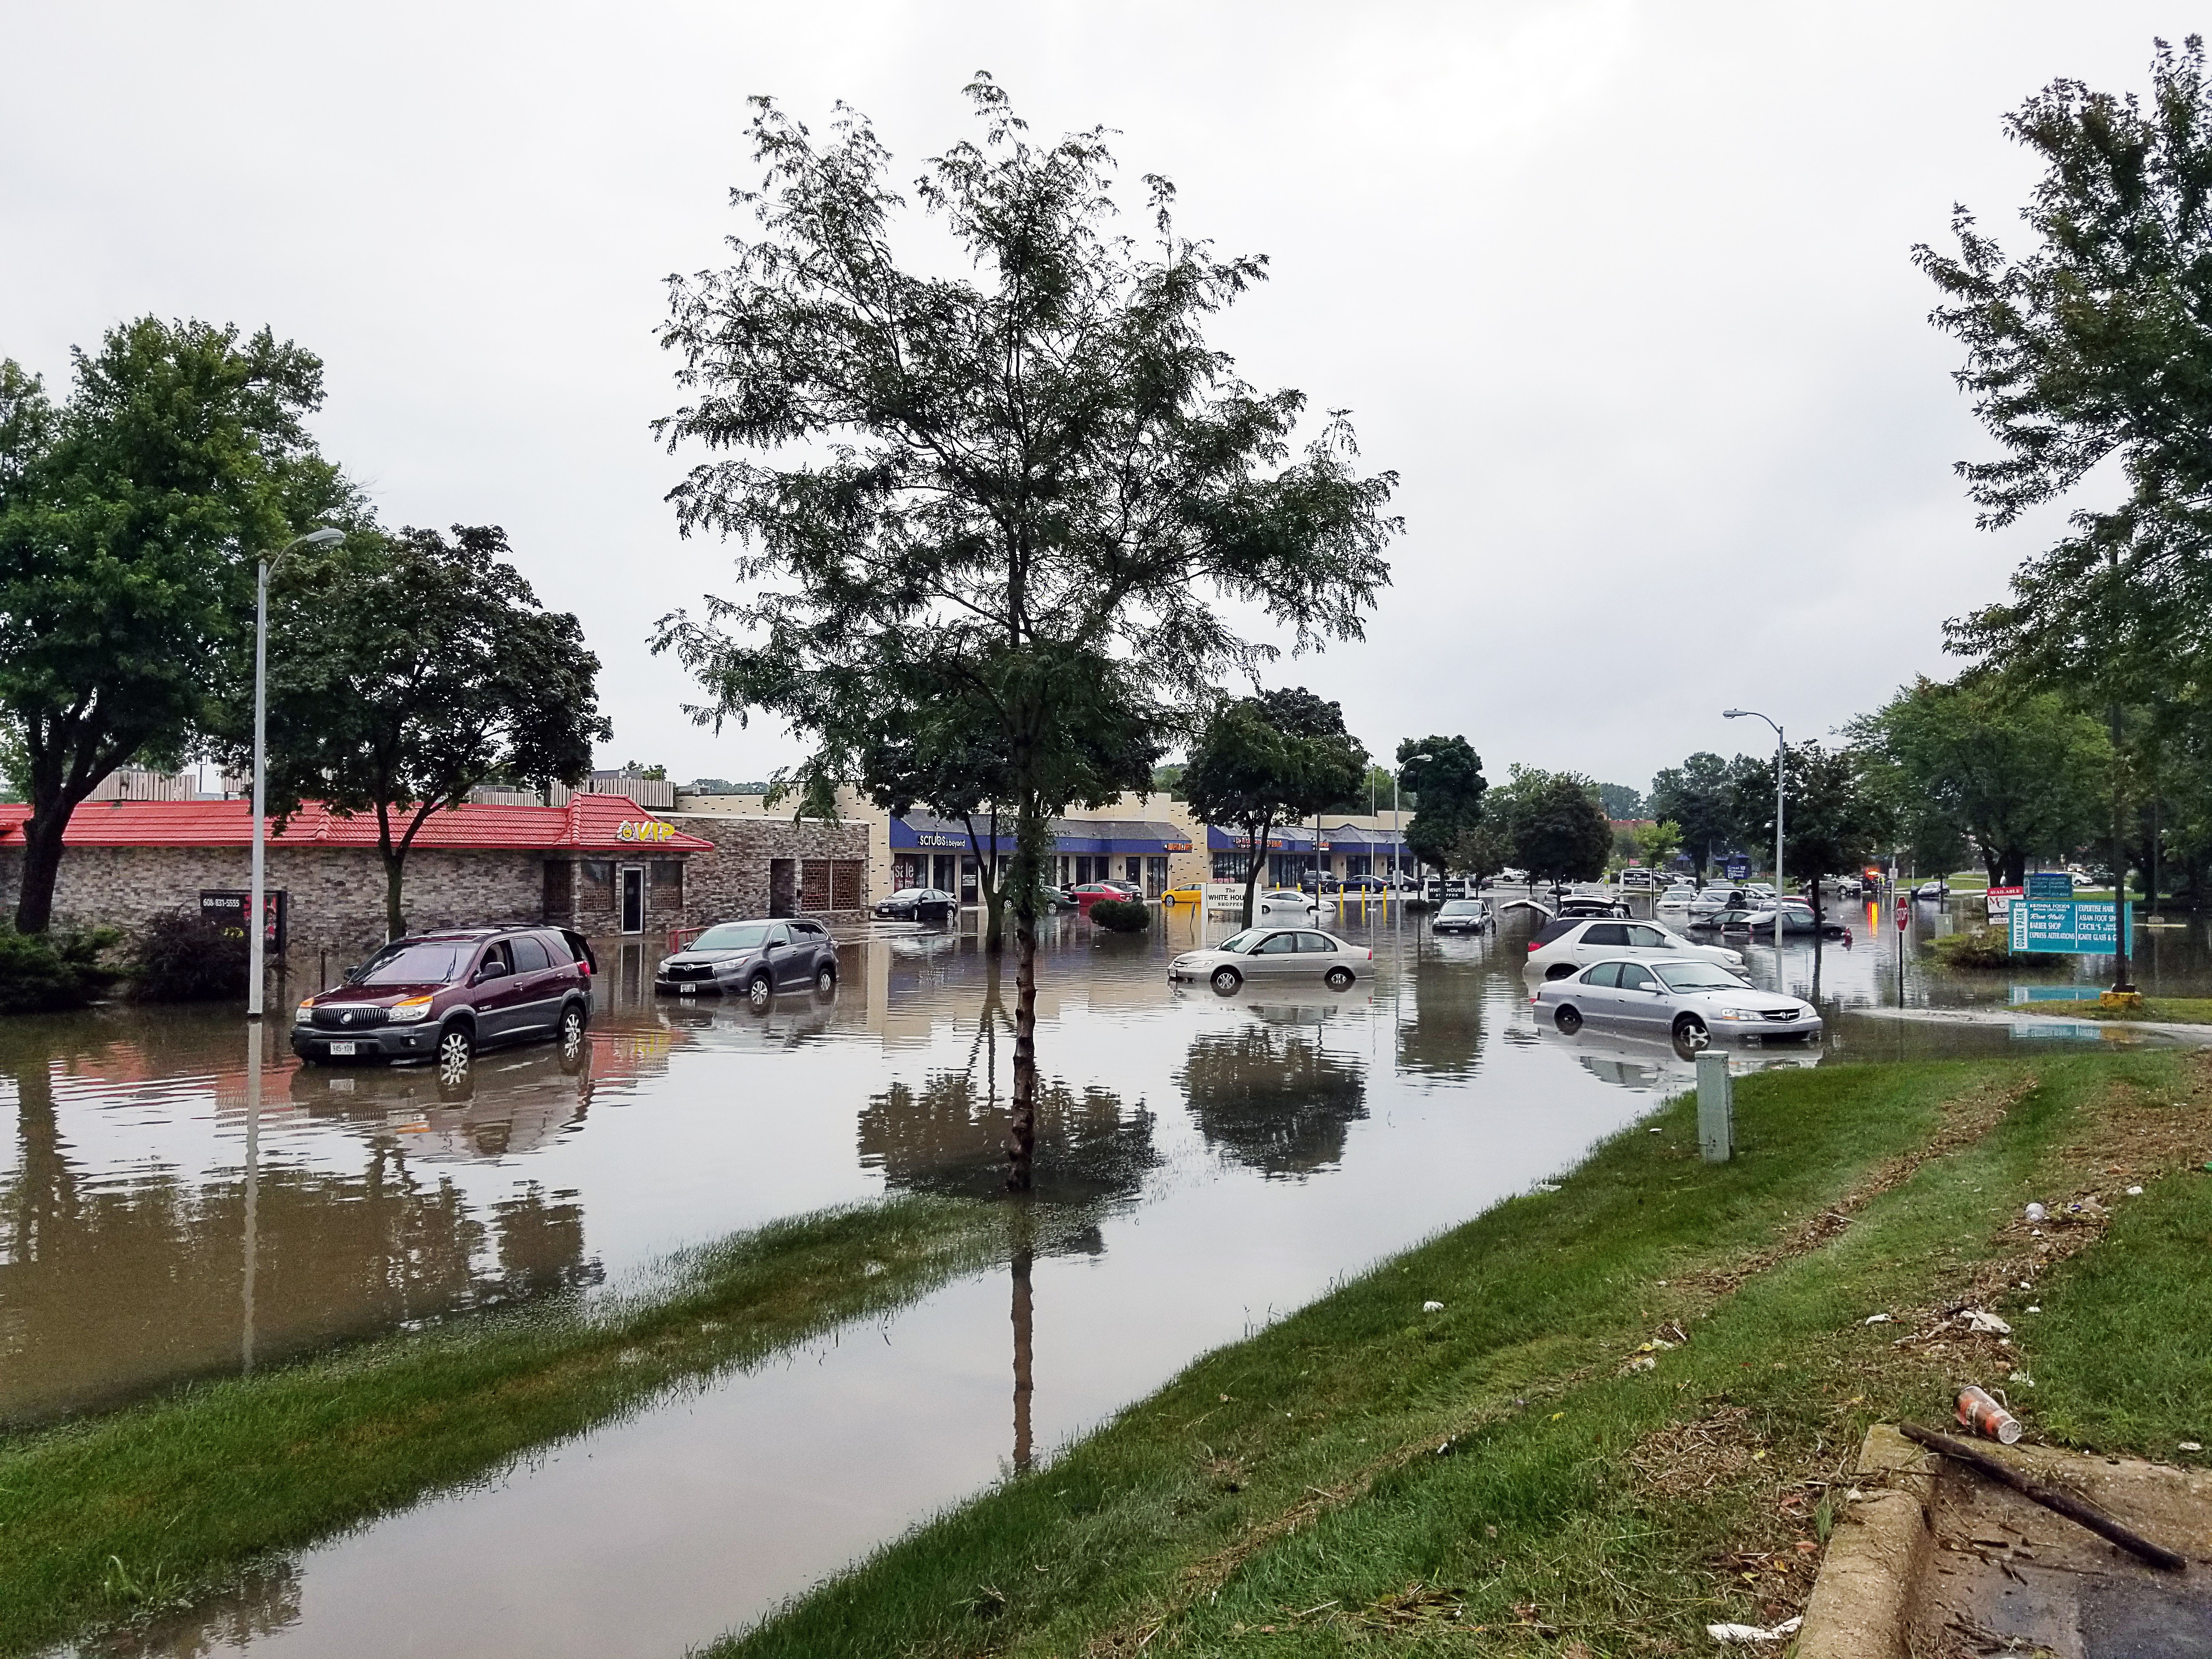 flooded street with parked cars